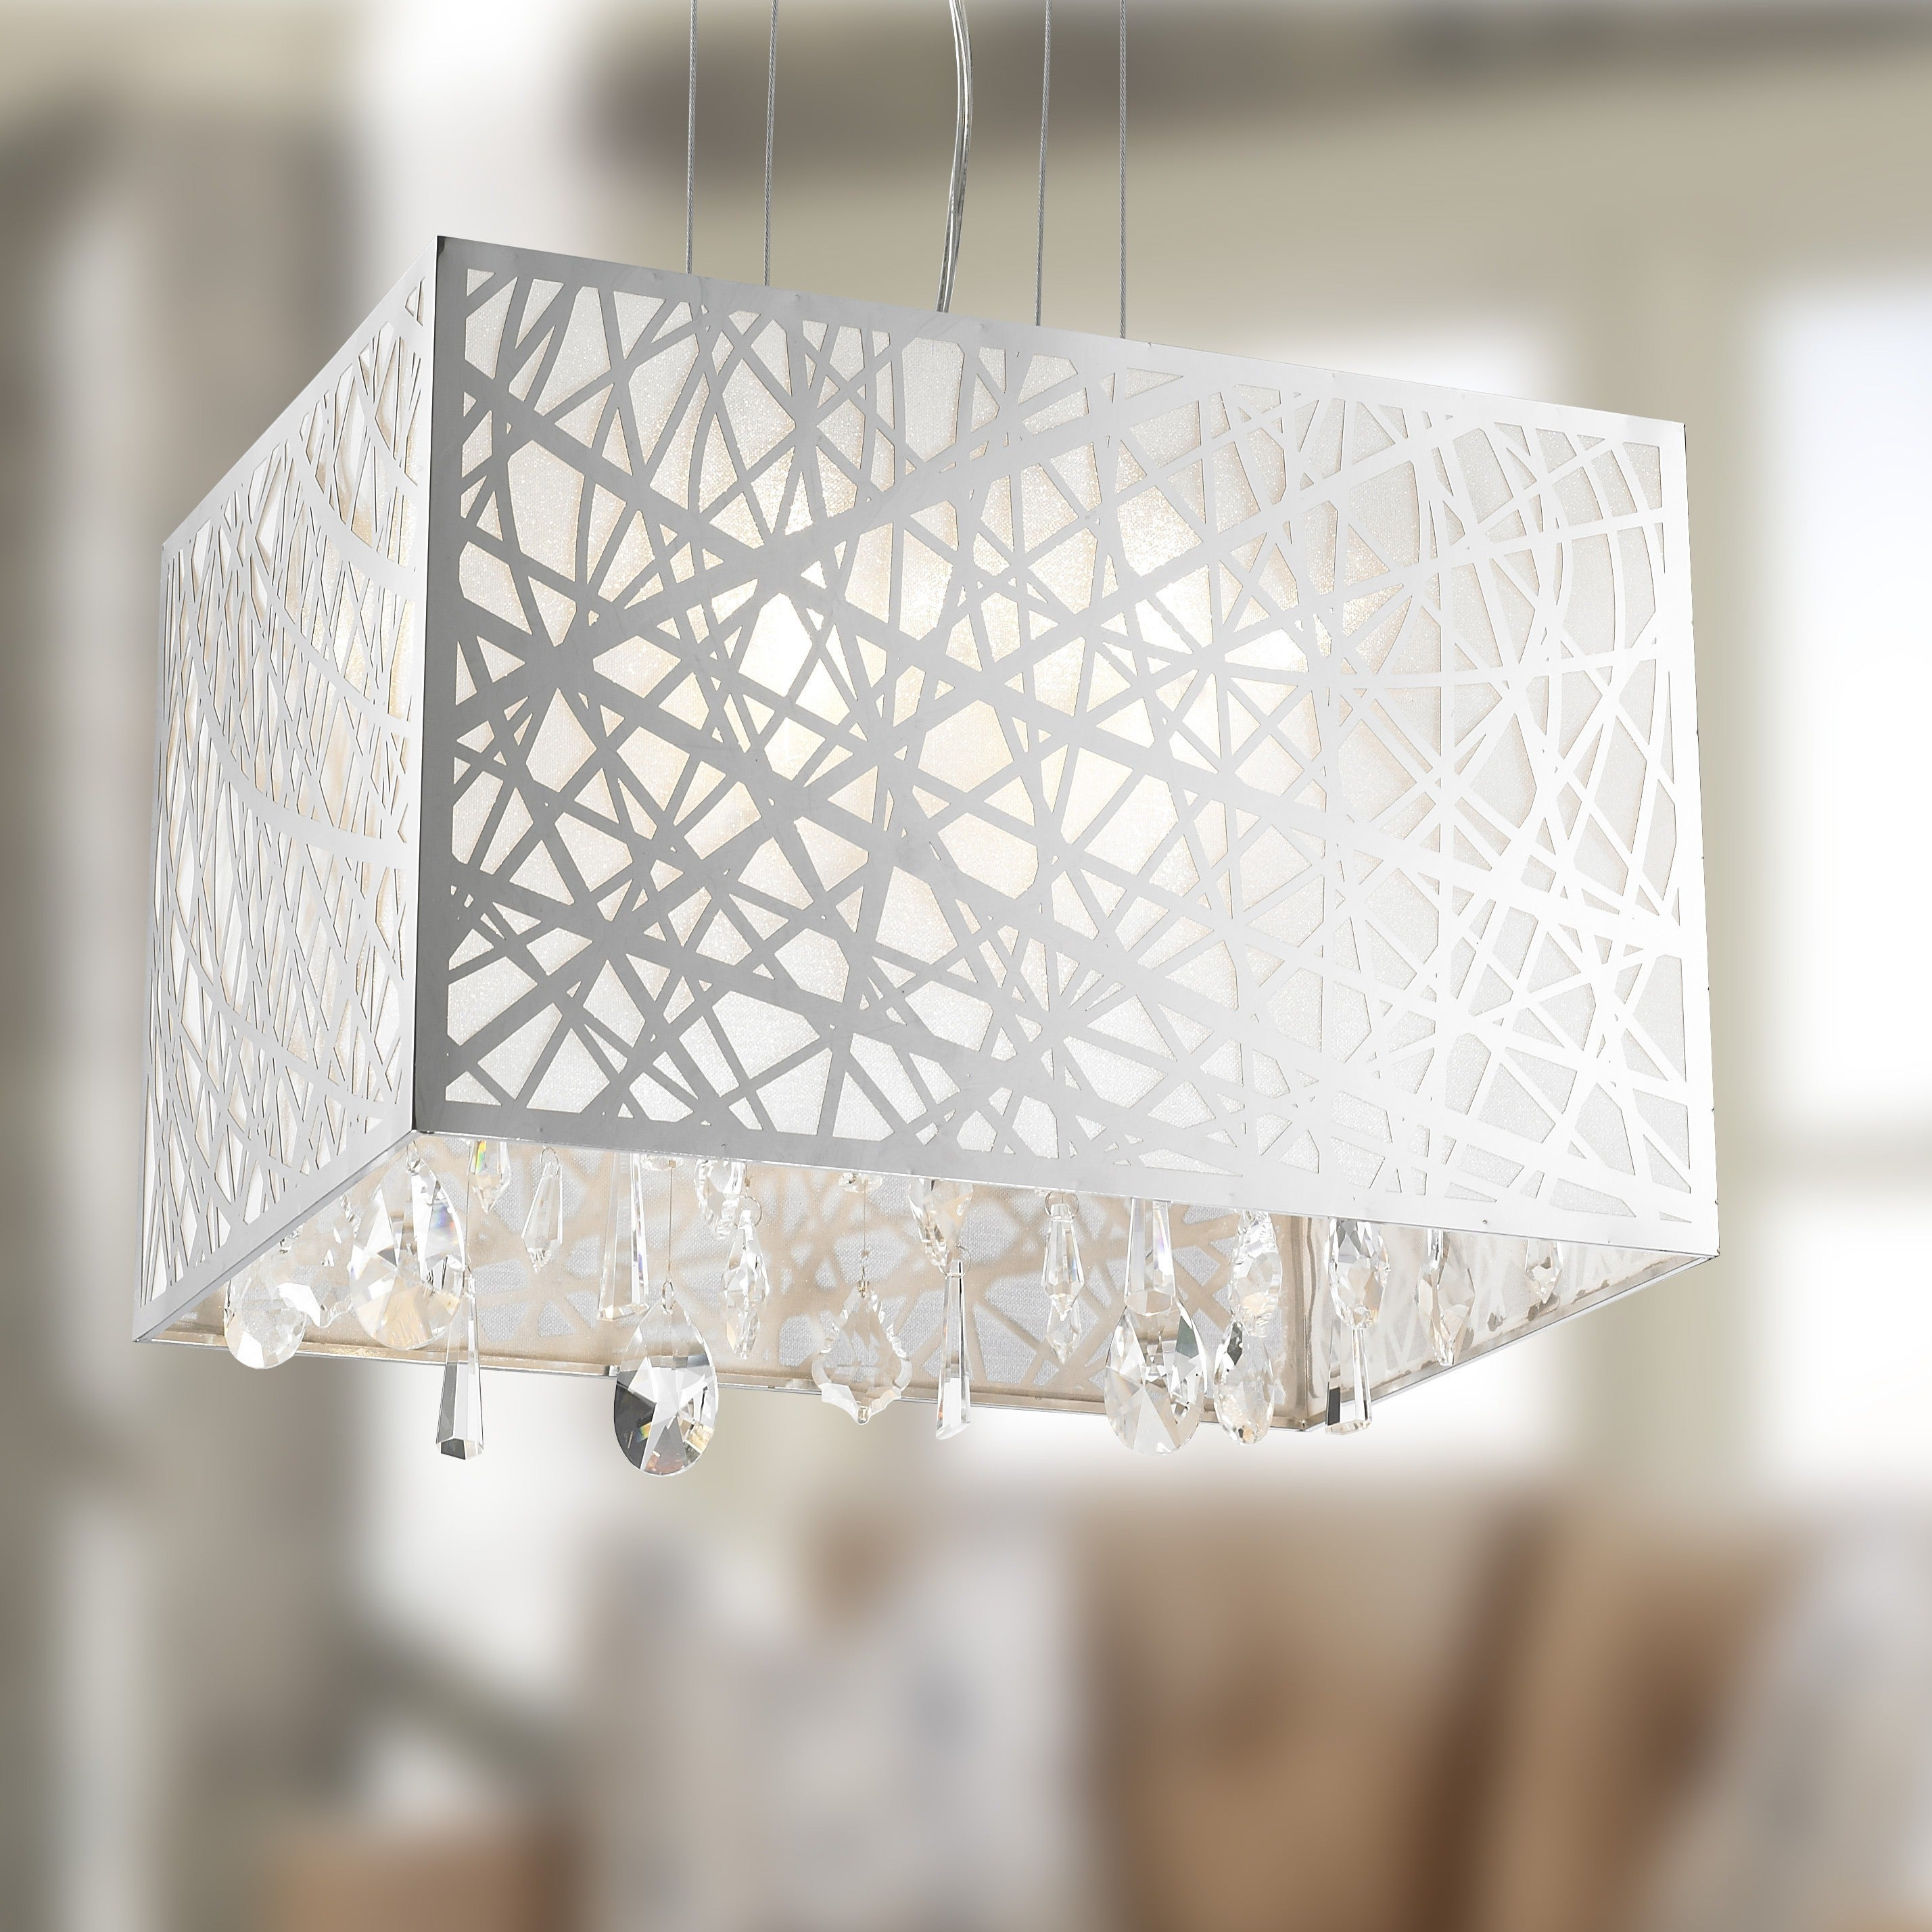 Brilliance Lighting and Chandeliers High Gloss Modern 4-l...